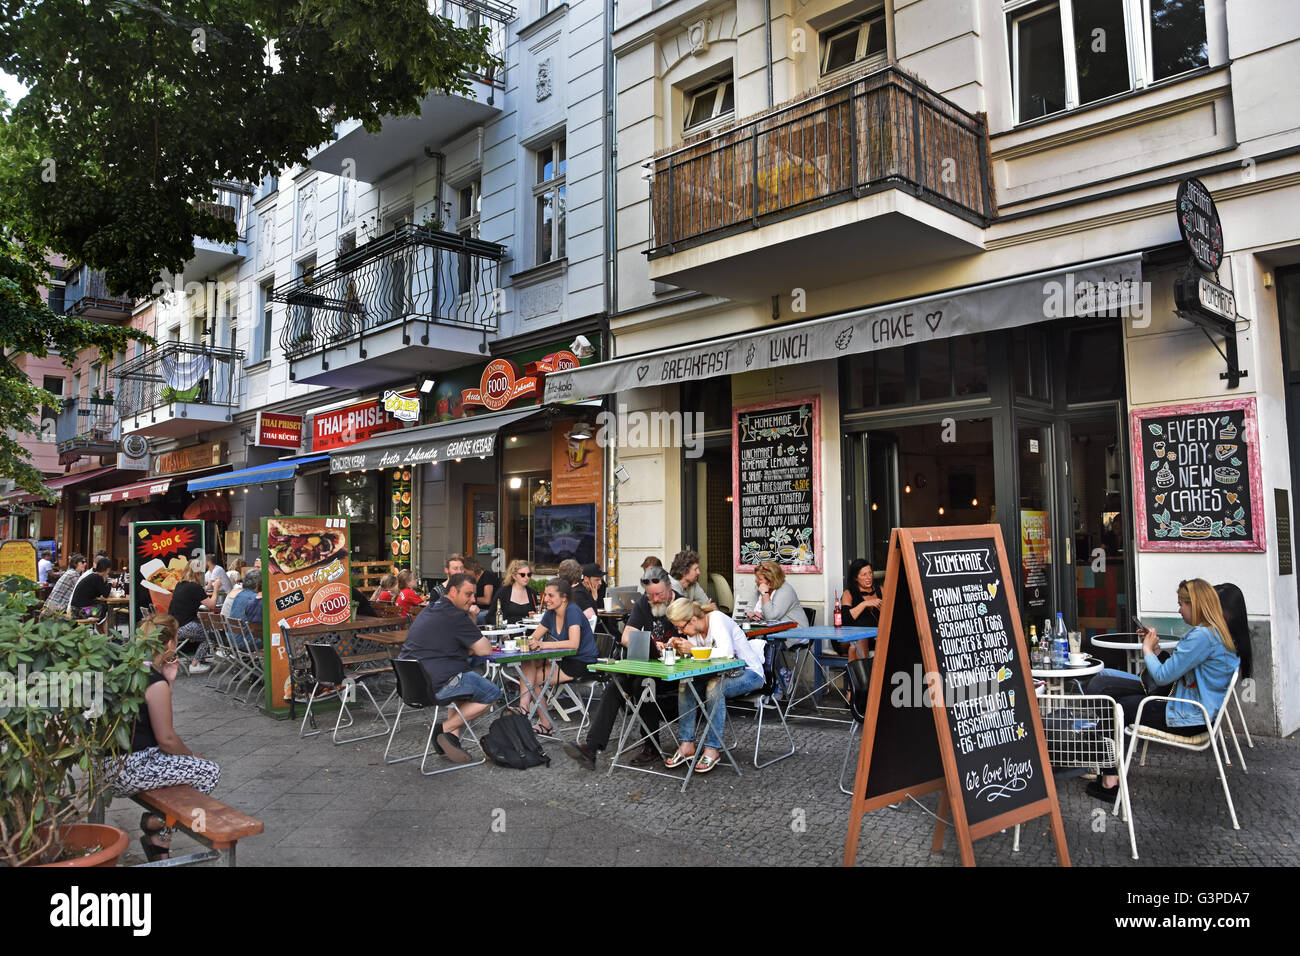 outside cafe bar restaurant bohemian friedrichshain kreuzberg stock photo 105599599 alamy. Black Bedroom Furniture Sets. Home Design Ideas